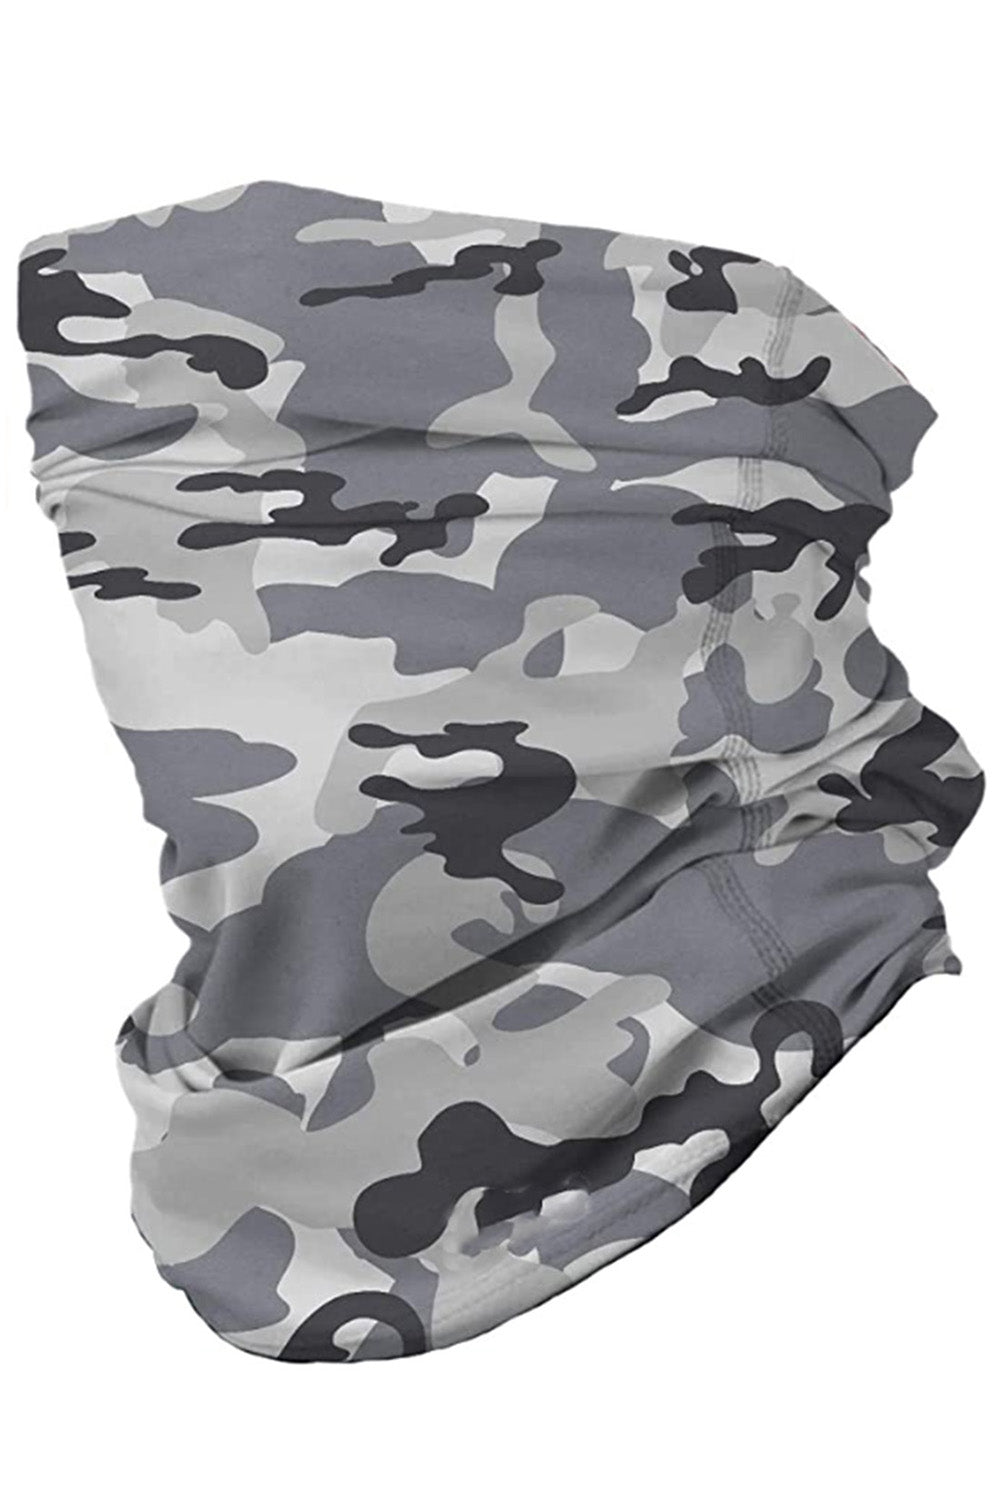 Arctic Camo Multifunctional Headwear Face Mask Headband Neck Gaiter Neck Gaiter Discount Designer Fashion Clothes Shoes Bags Women Men Kids Children Black Owned Business